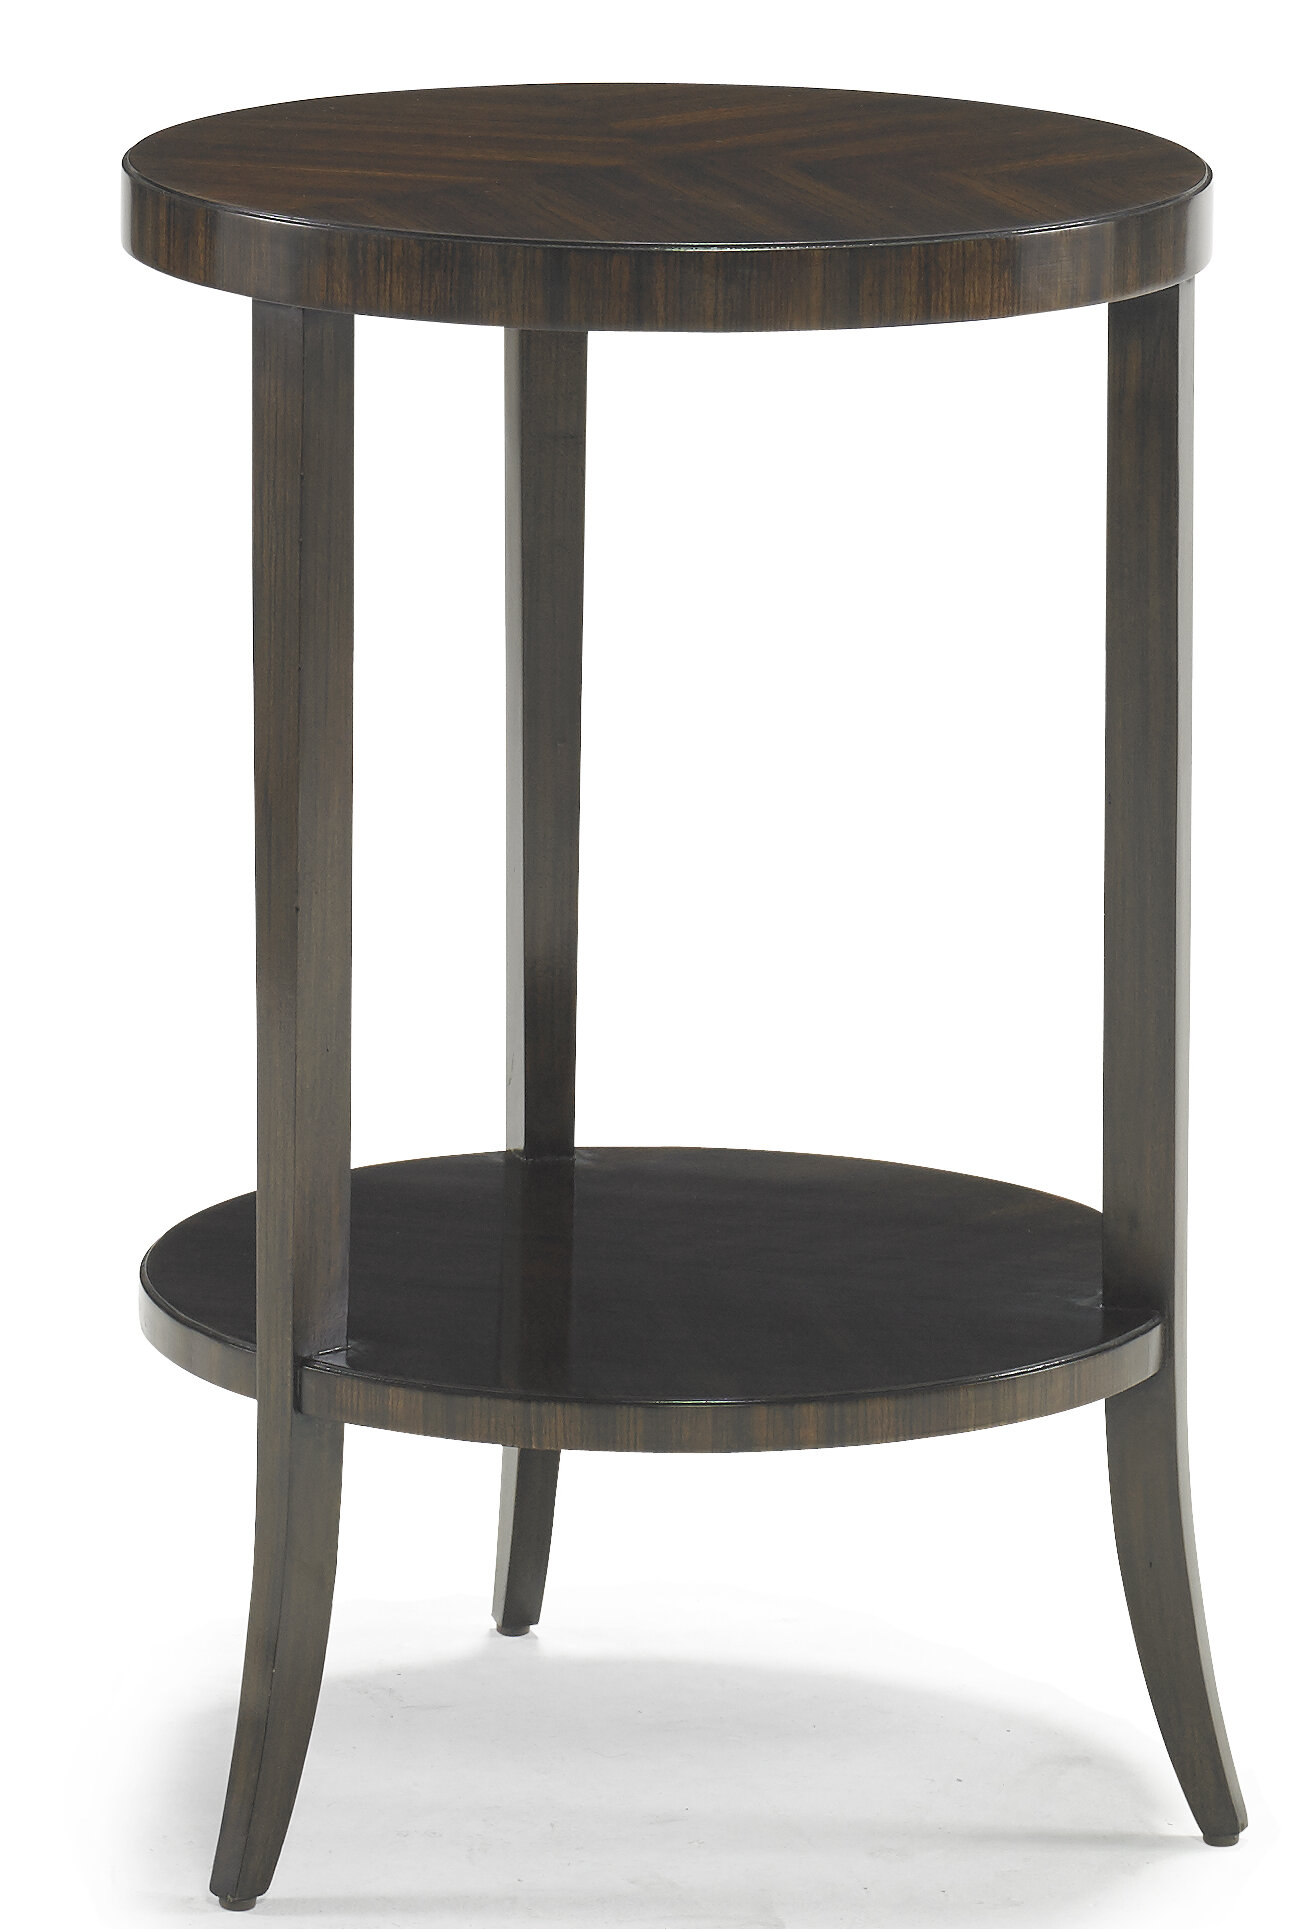 Cth Occasional Popin 3 Legs End Table With Storage Perigold